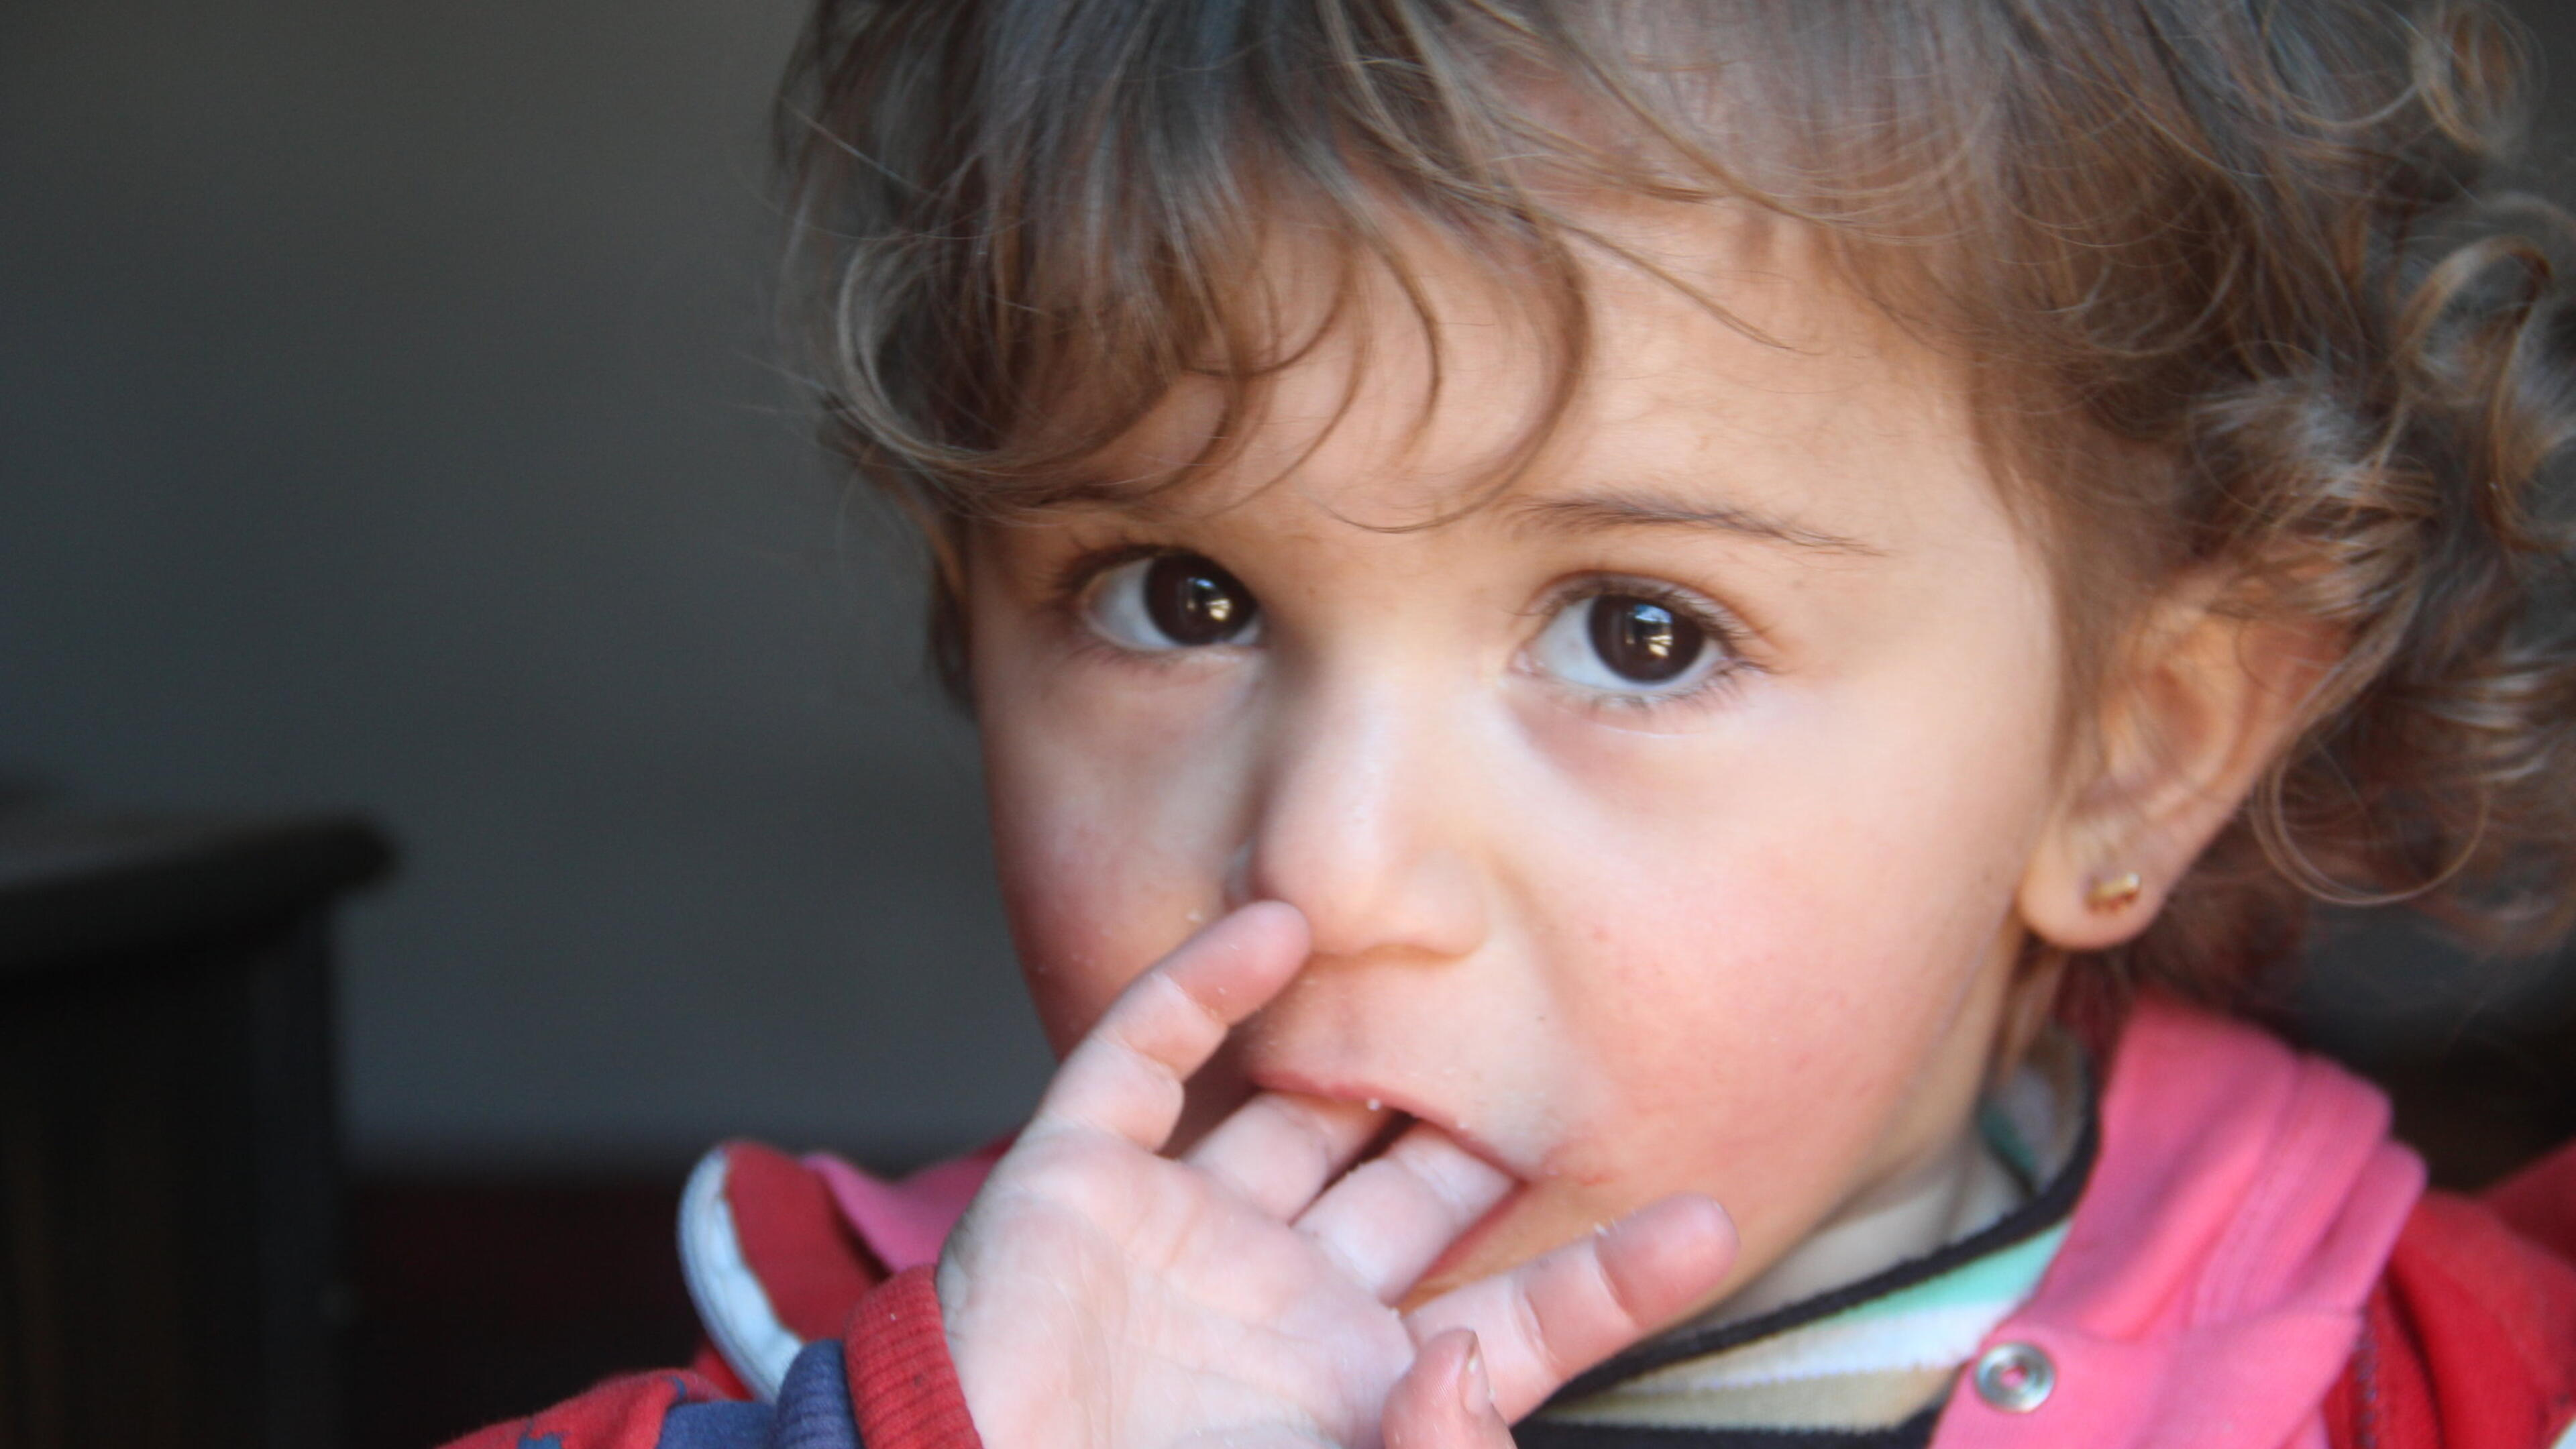 Life under bombardment: A look into the mental health crisis in Syria